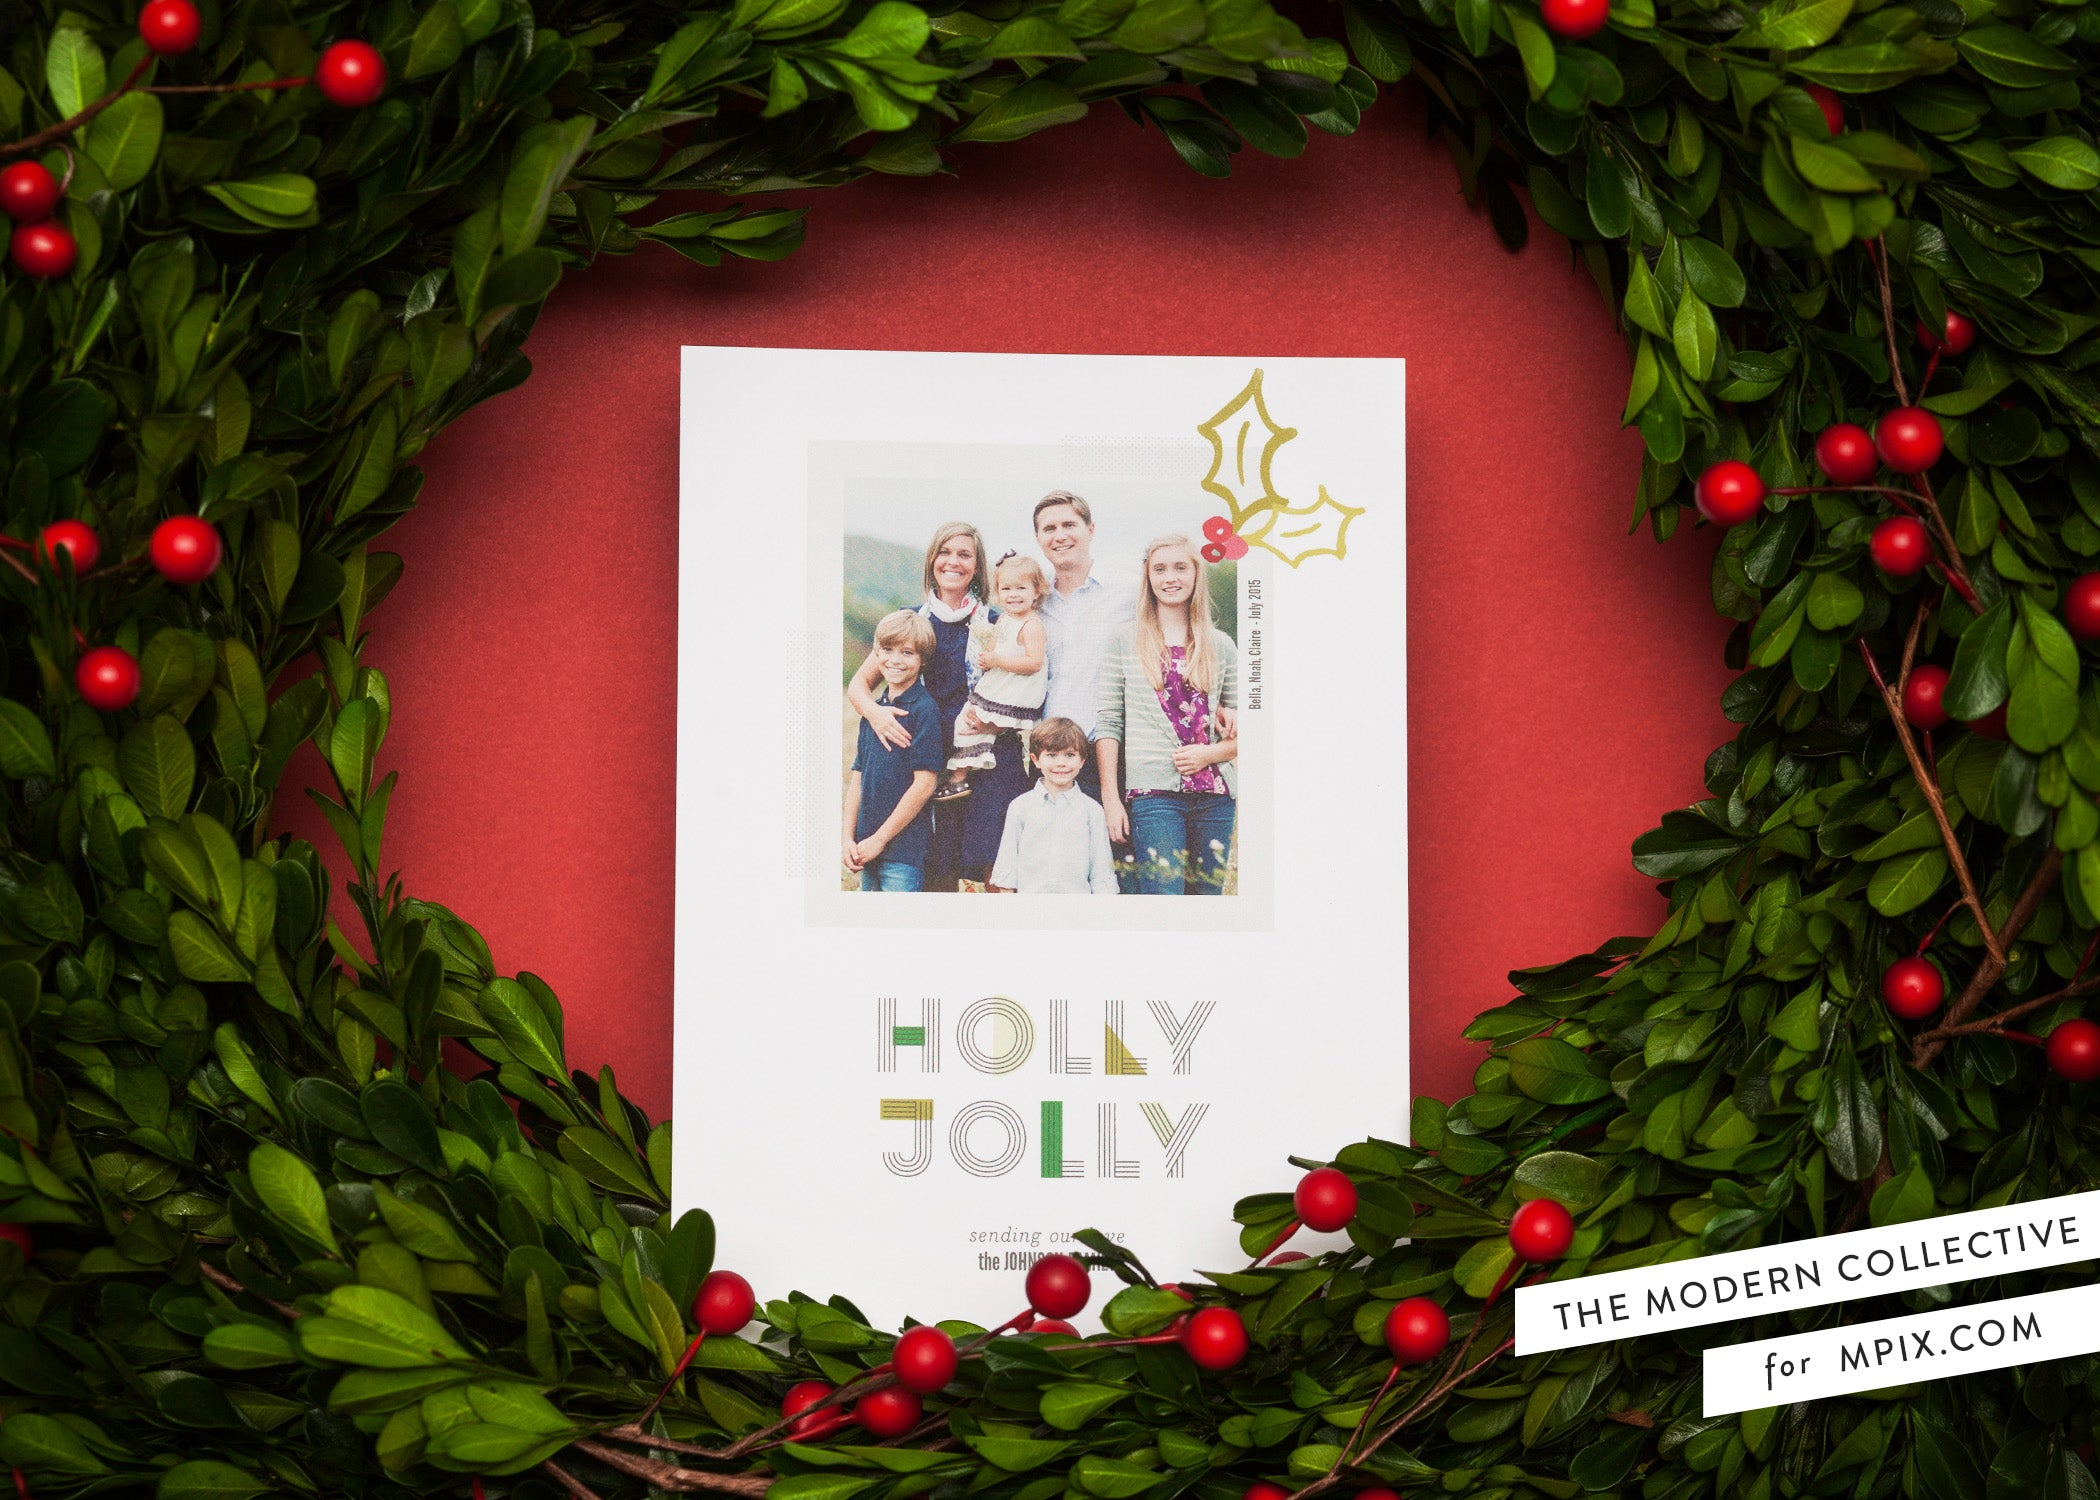 Holy Holiday Card for Mpix.com